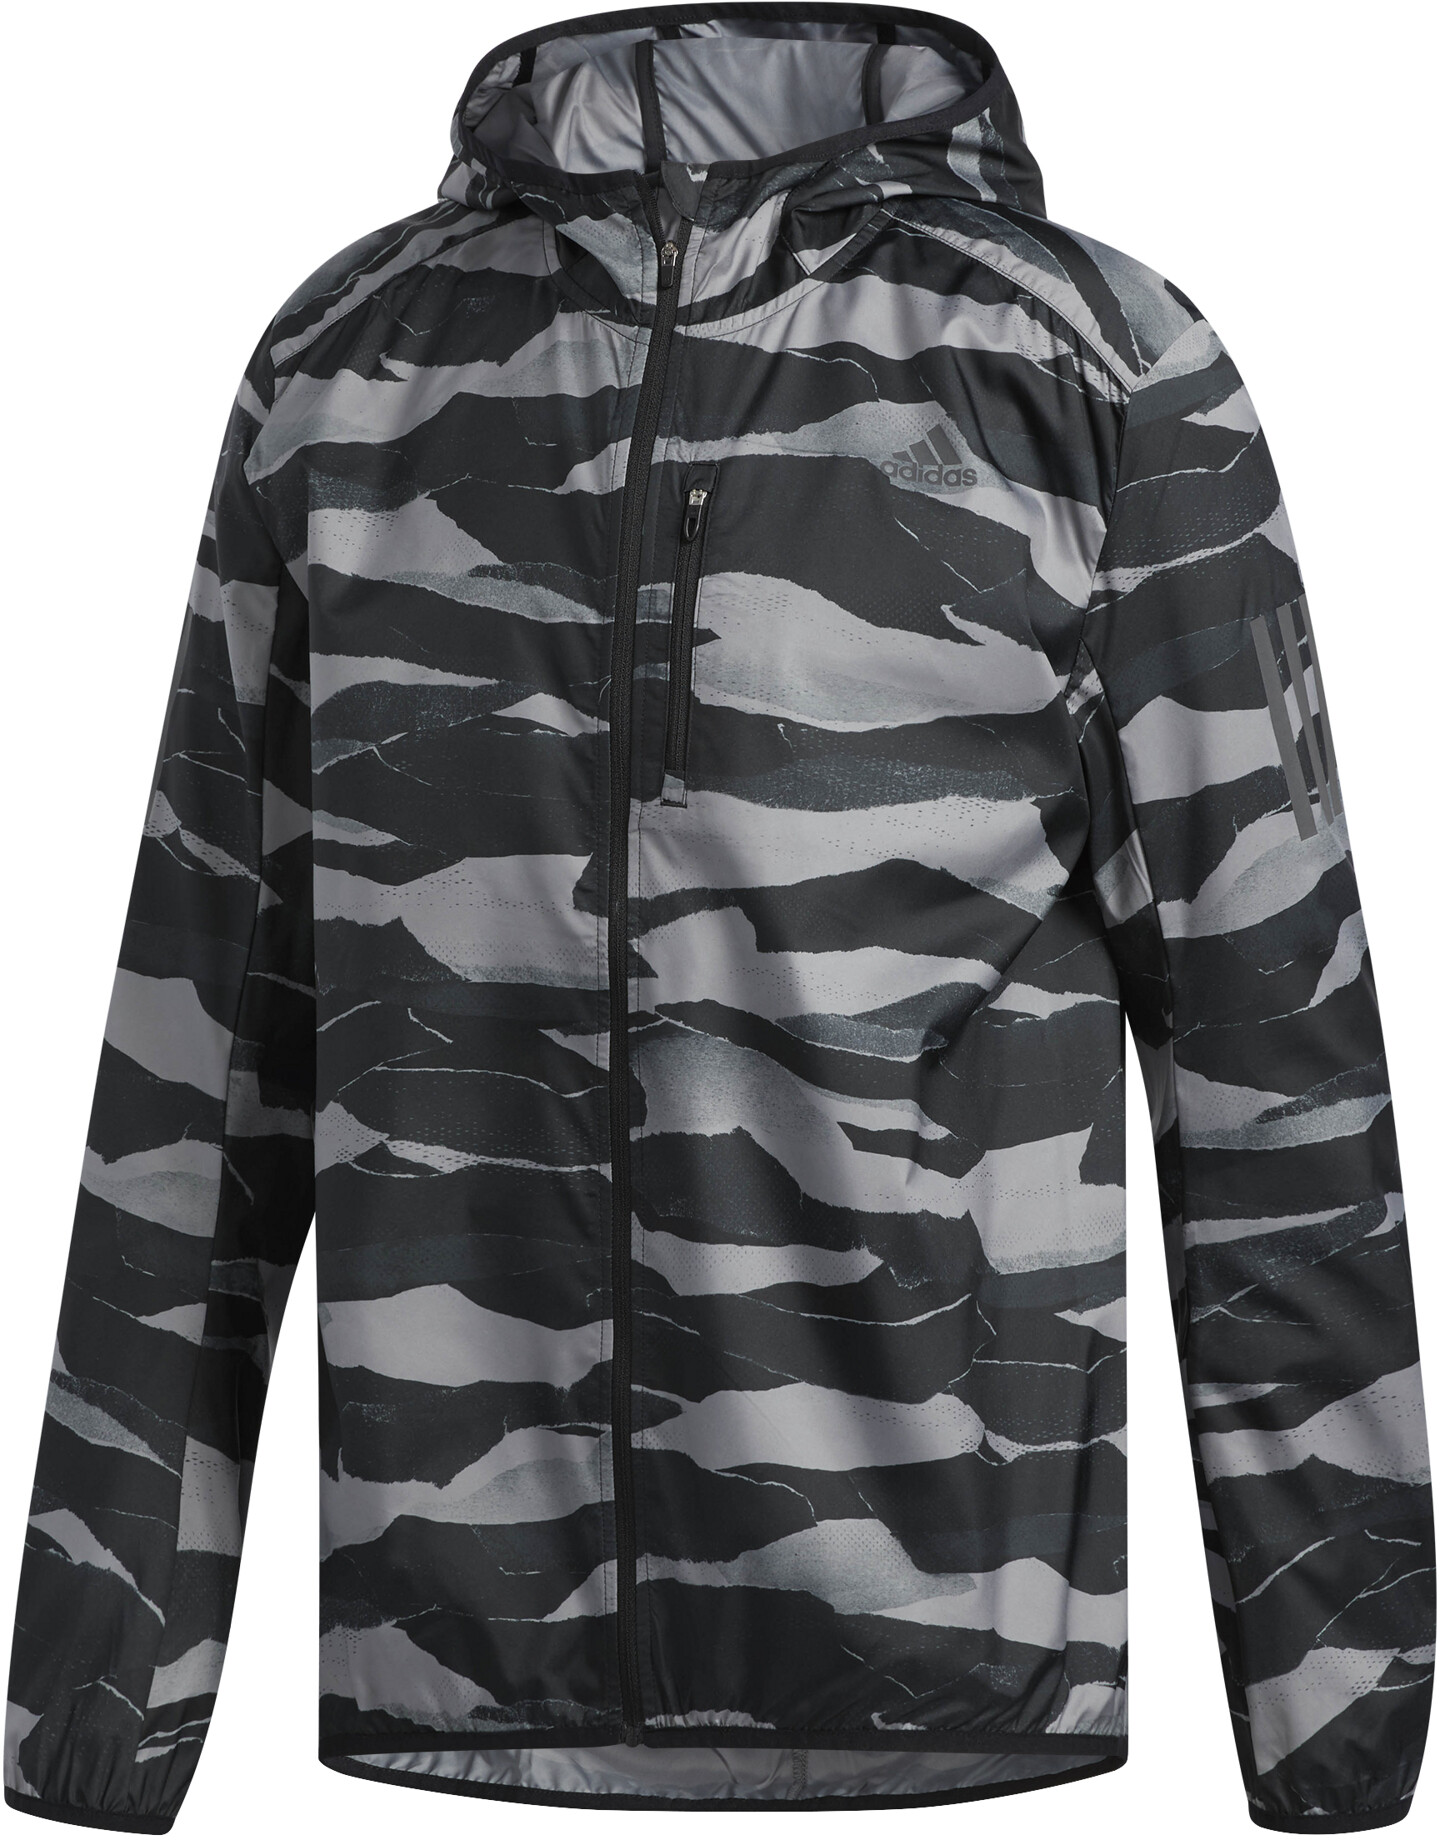 À Sur Adidas Campz Run Own The Homme Veste Grisnoir Pied Course qXXSpOFw